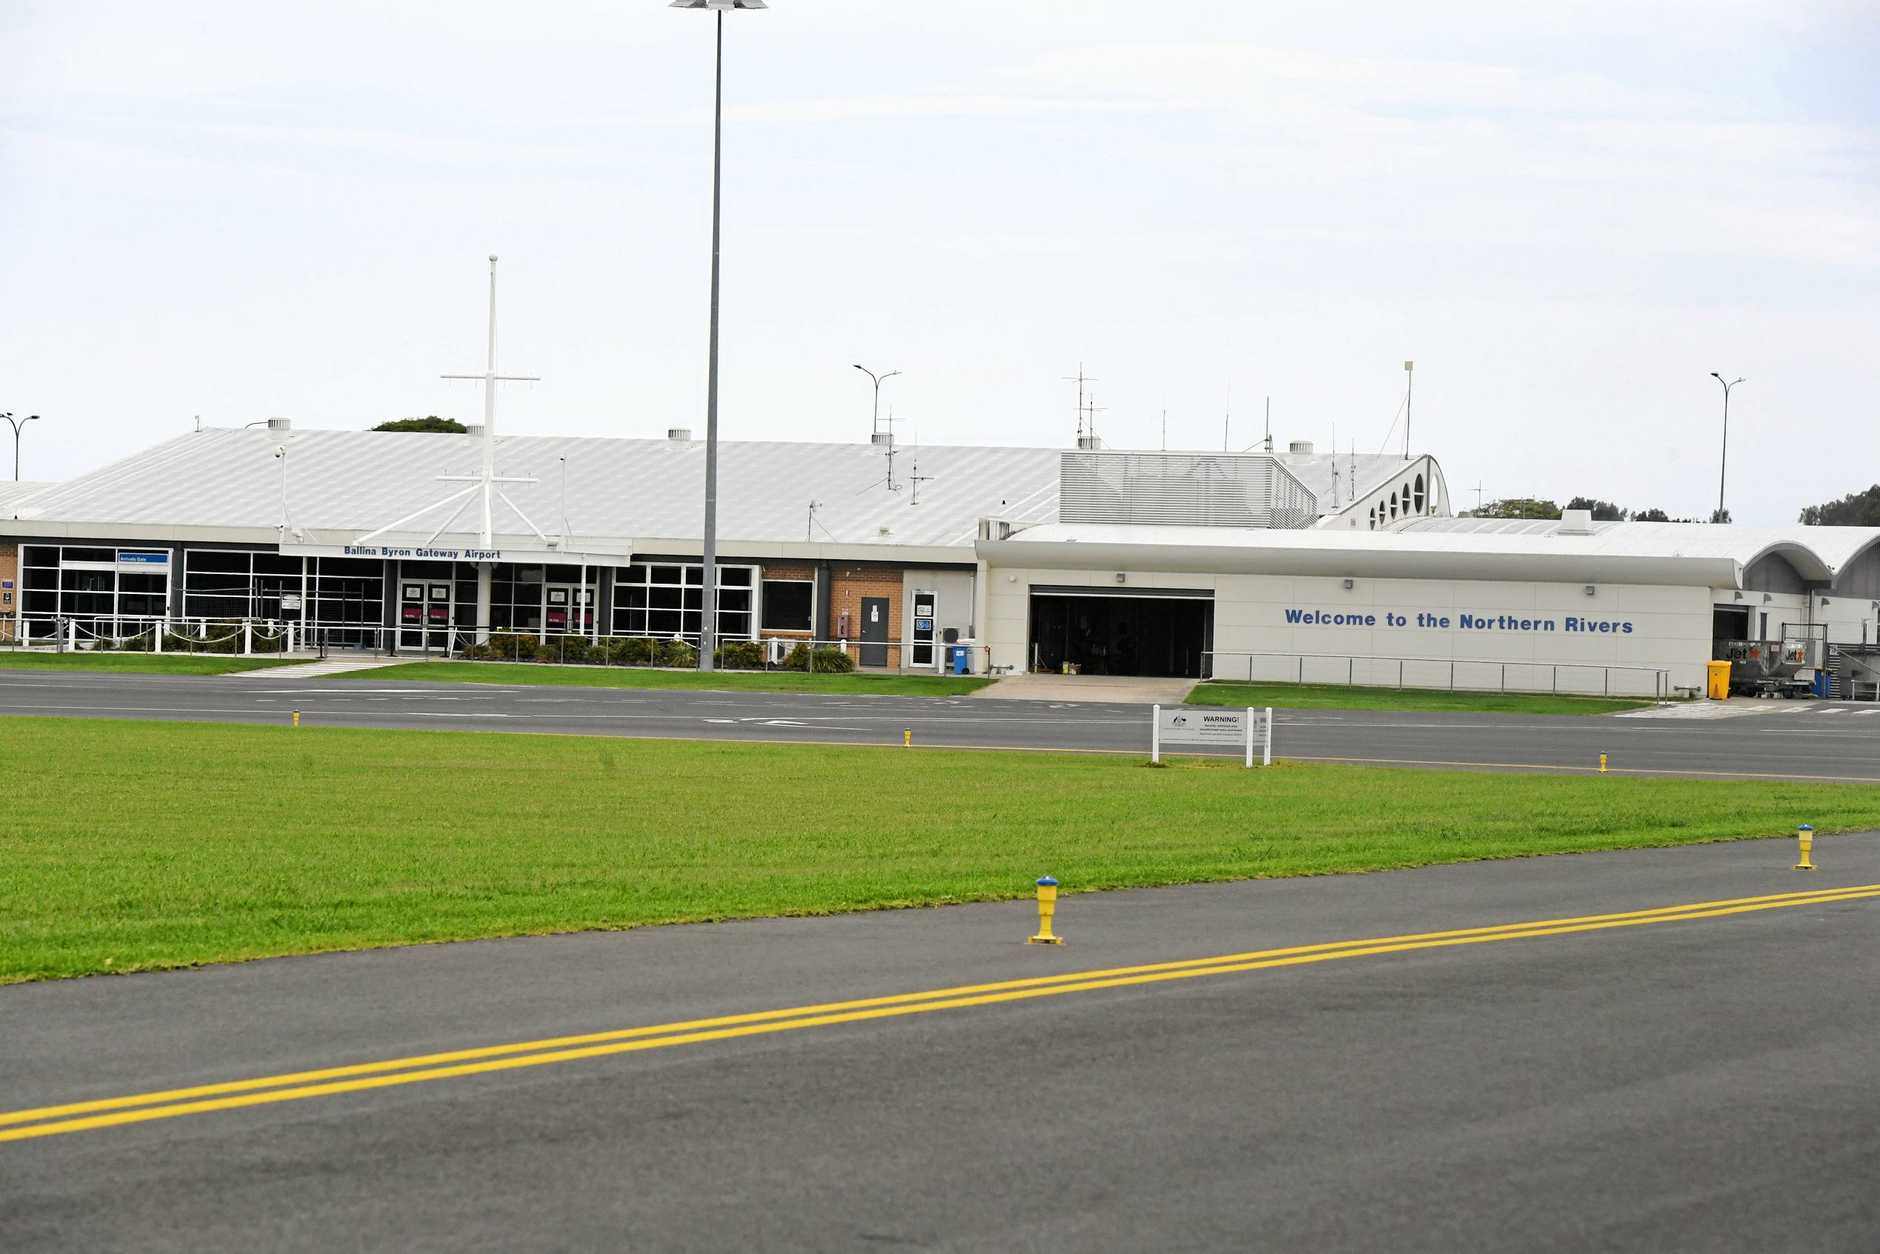 Ballina Byron Gateway Airport which is presently undergoing a $6.9 million upgrade.